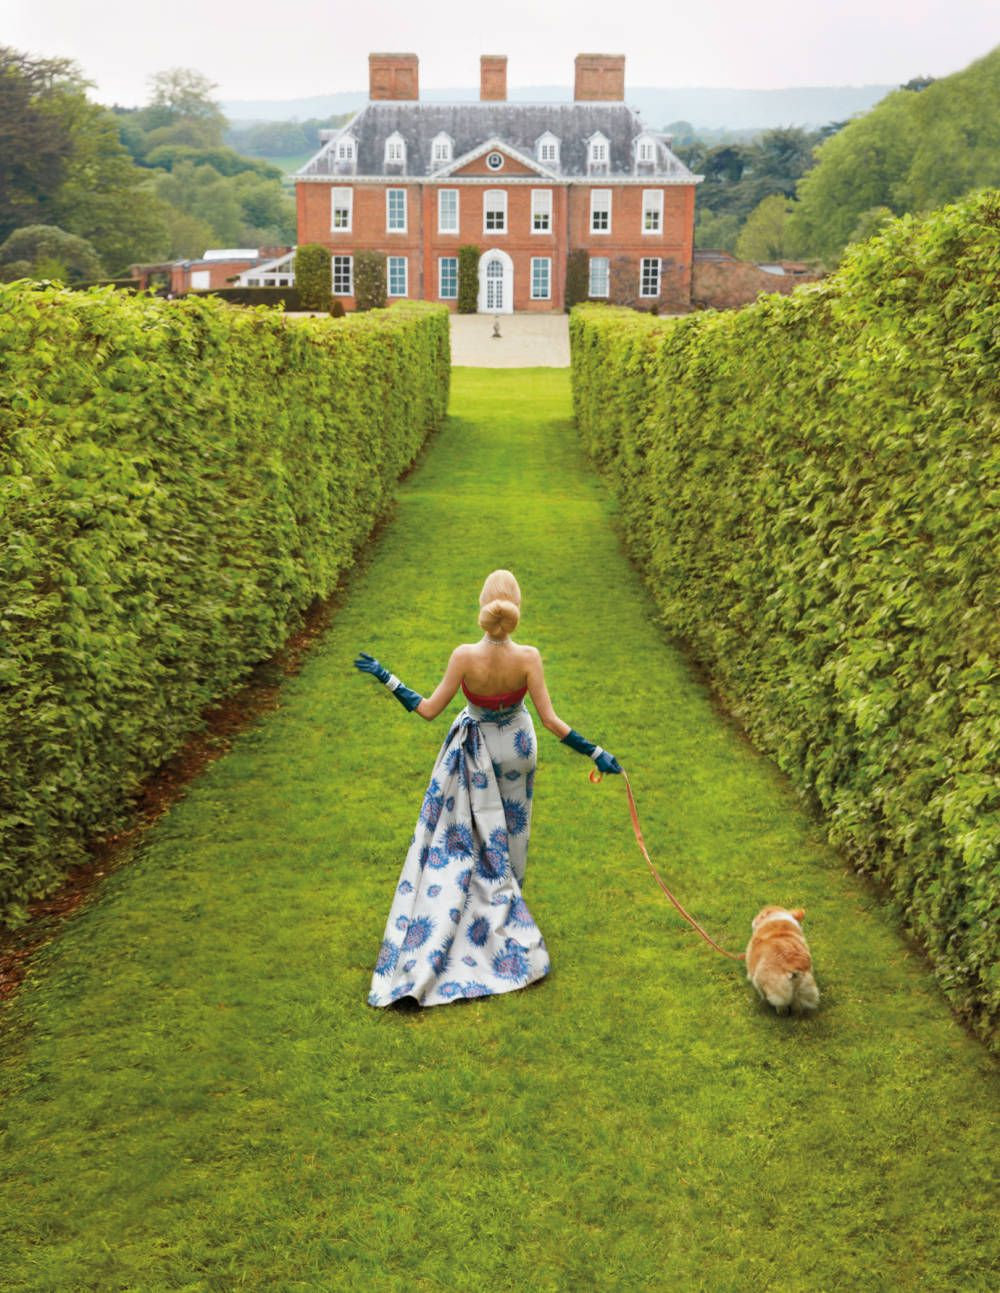 Carolina Herrera Gown at Squerryes Court in Kent, England.